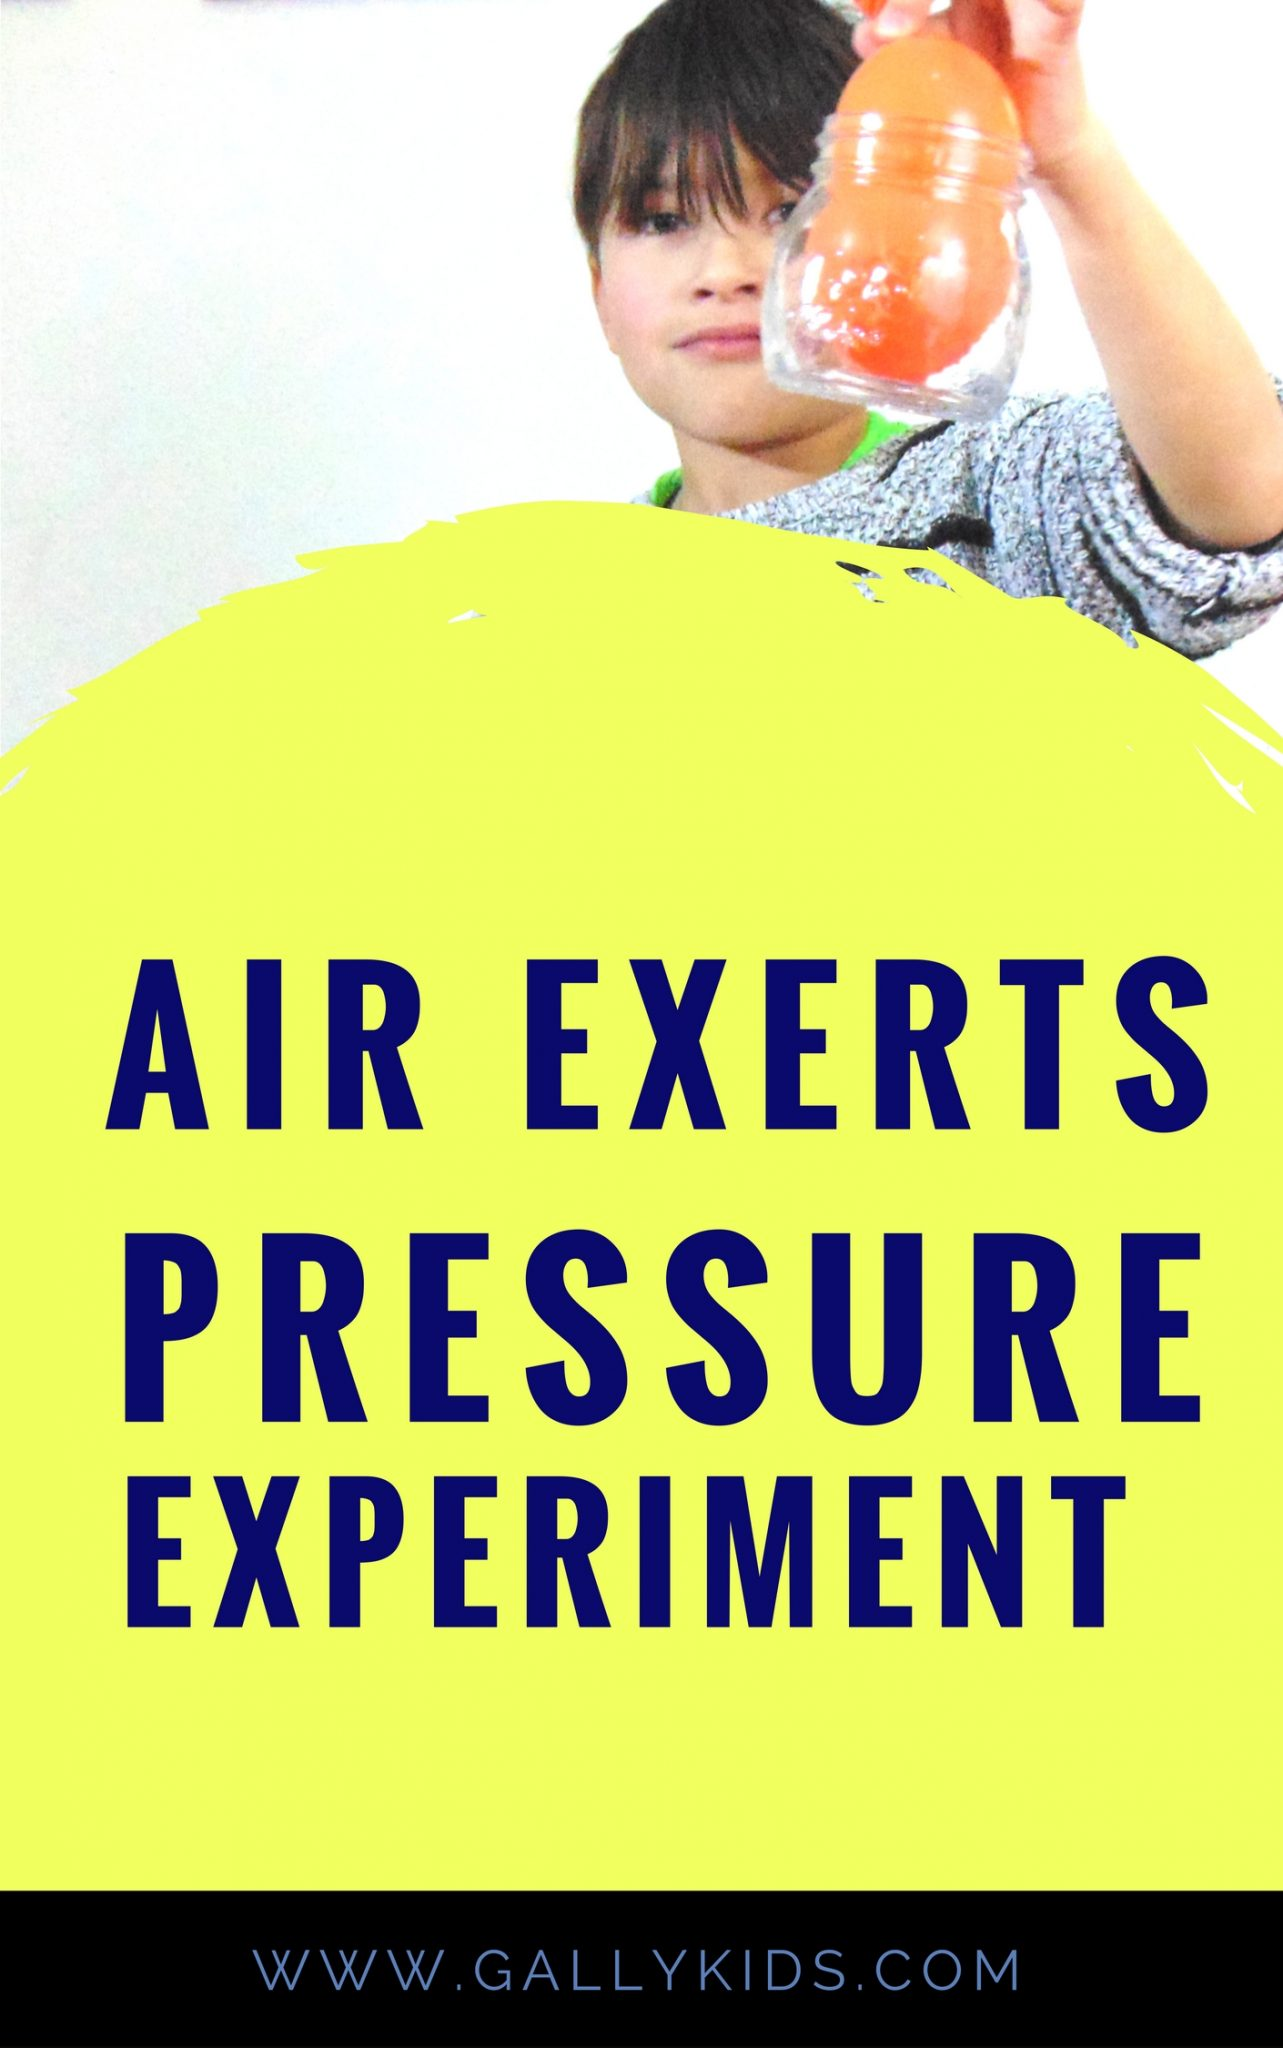 Can You Carry A Glass Jar With A Balloon? [Air Exerts Pressure Experiment]